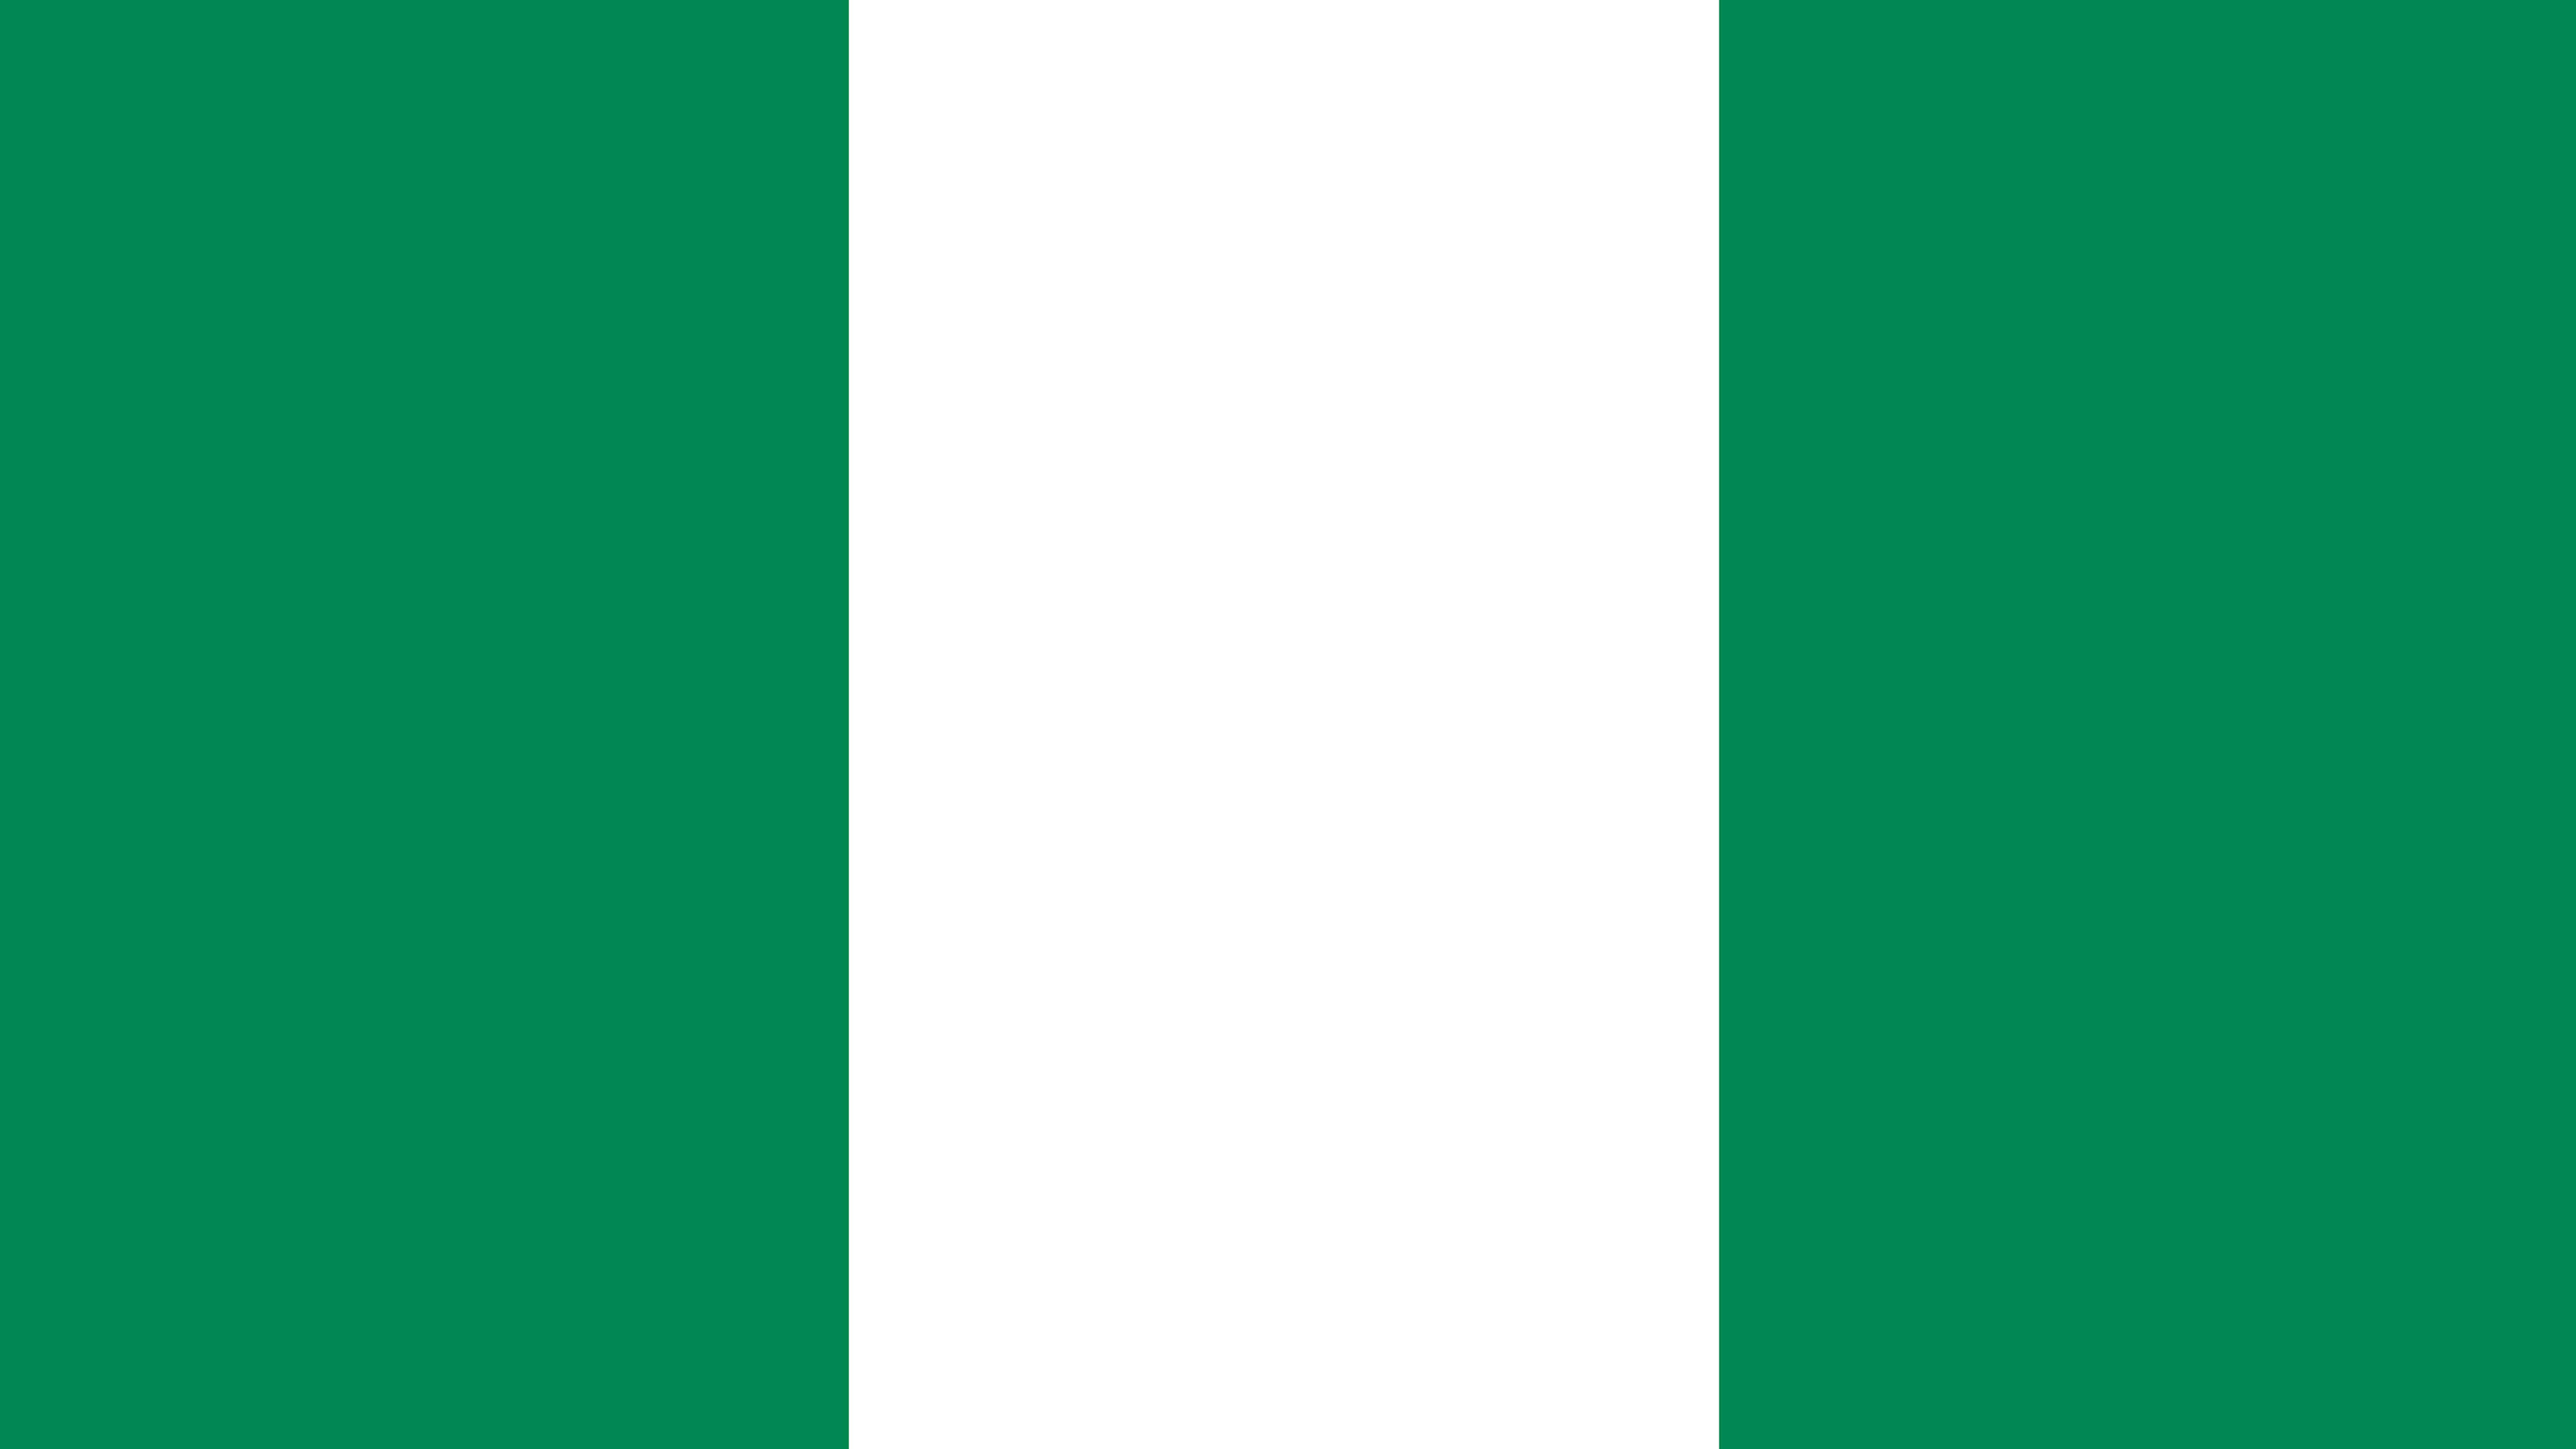 nigeria flag uhd 4k wallpaper